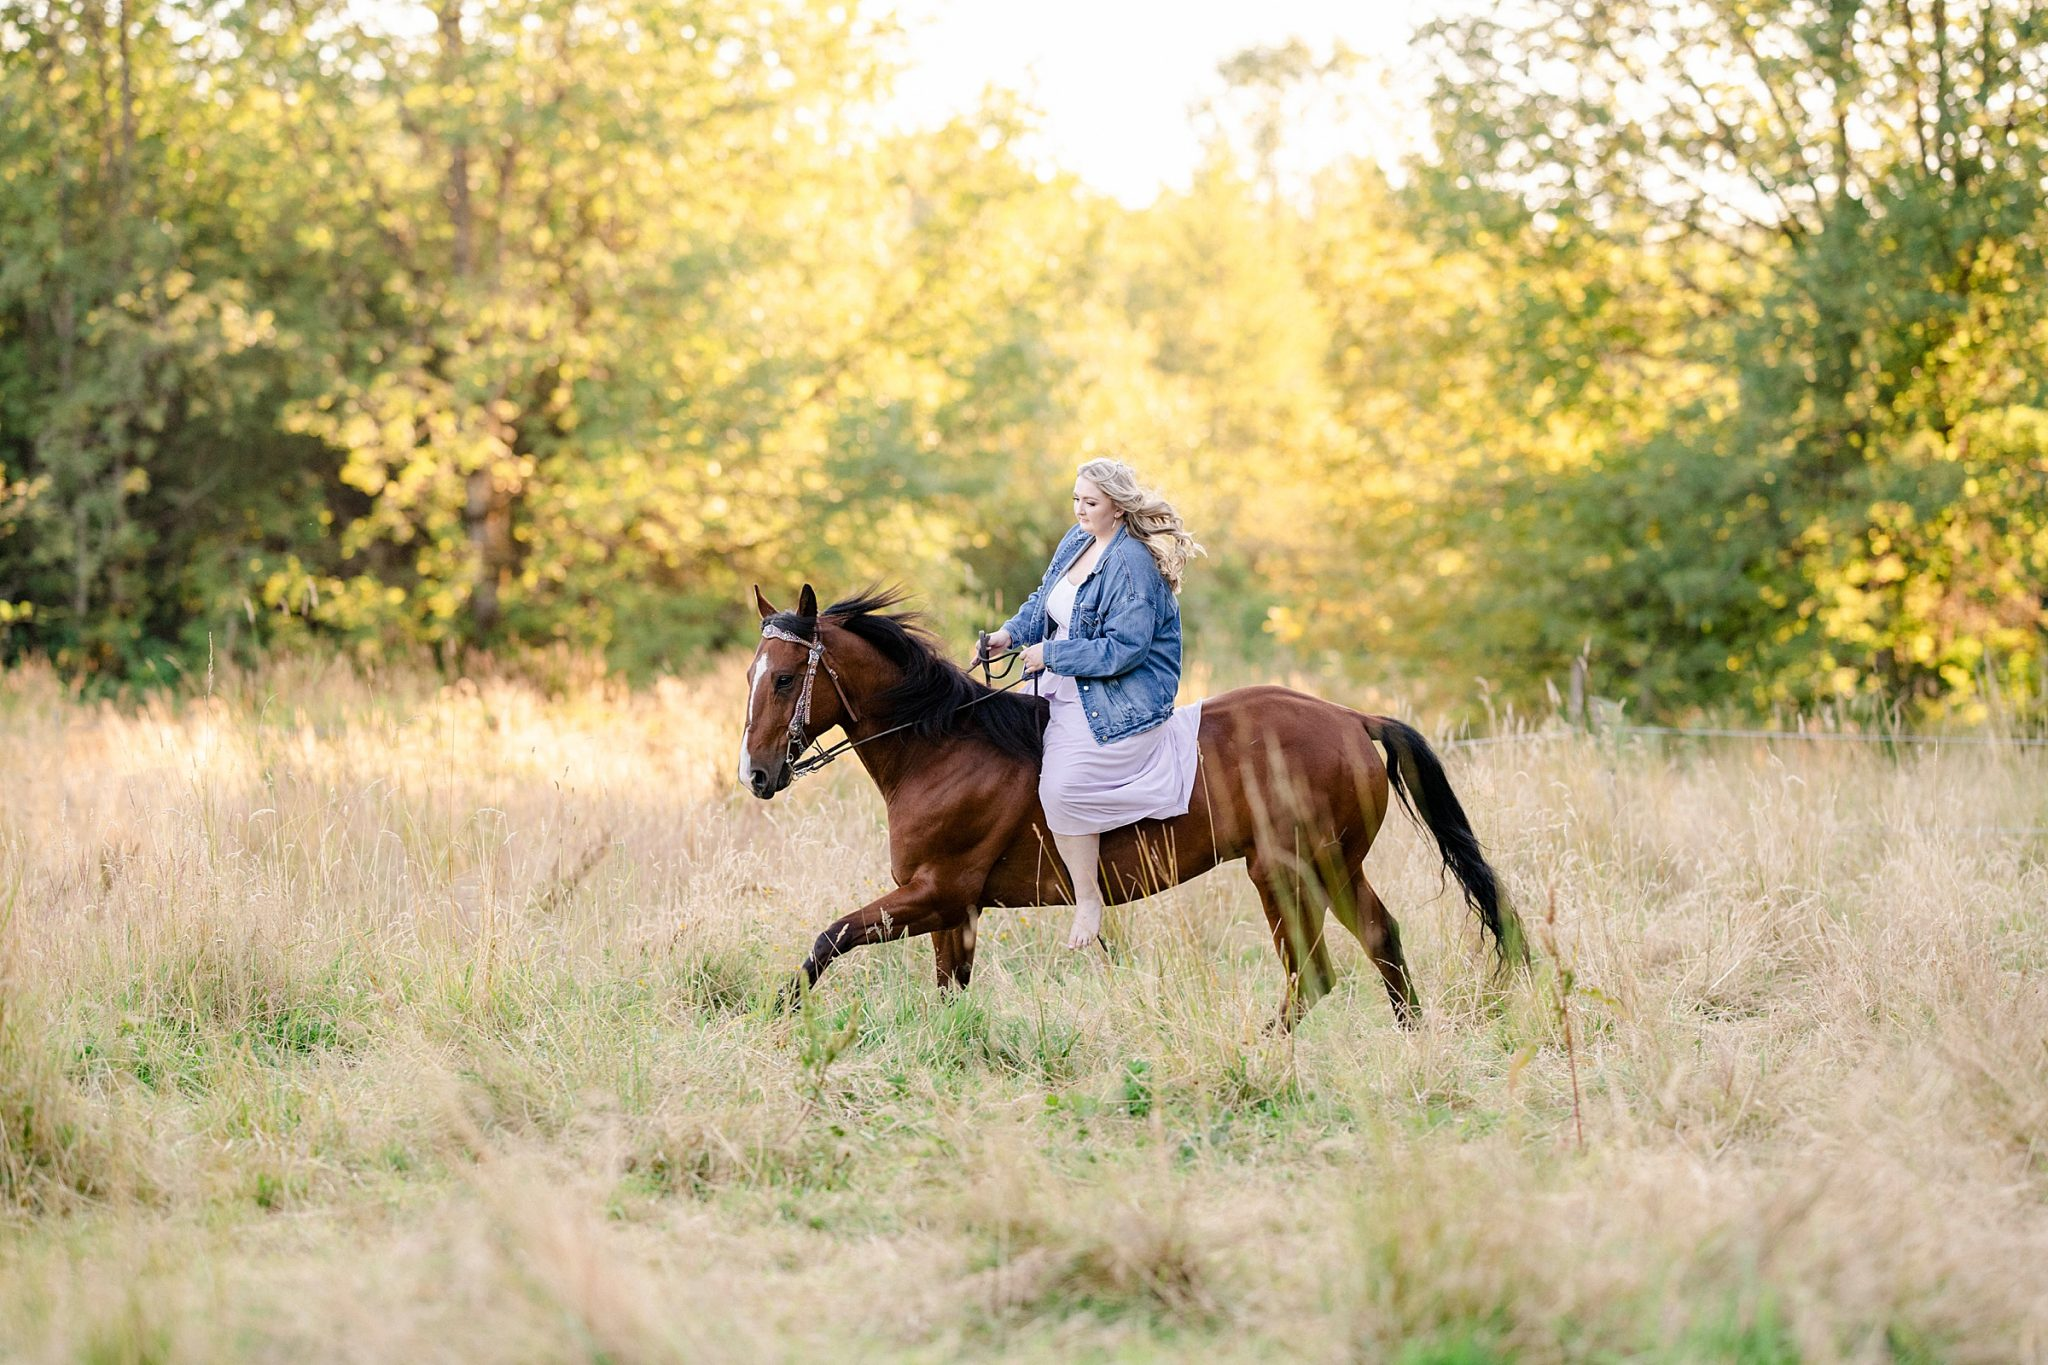 https://kirstiemarie.com/wp-content/uploads/2020/09/Jaqueline-and-Victoria-Burnard-Sisters-Barrel-Racing-TA-Ranch-APHA-Paint-Horse-by-Kirstie-Marie-Photography_0013-2048x1365.jpg